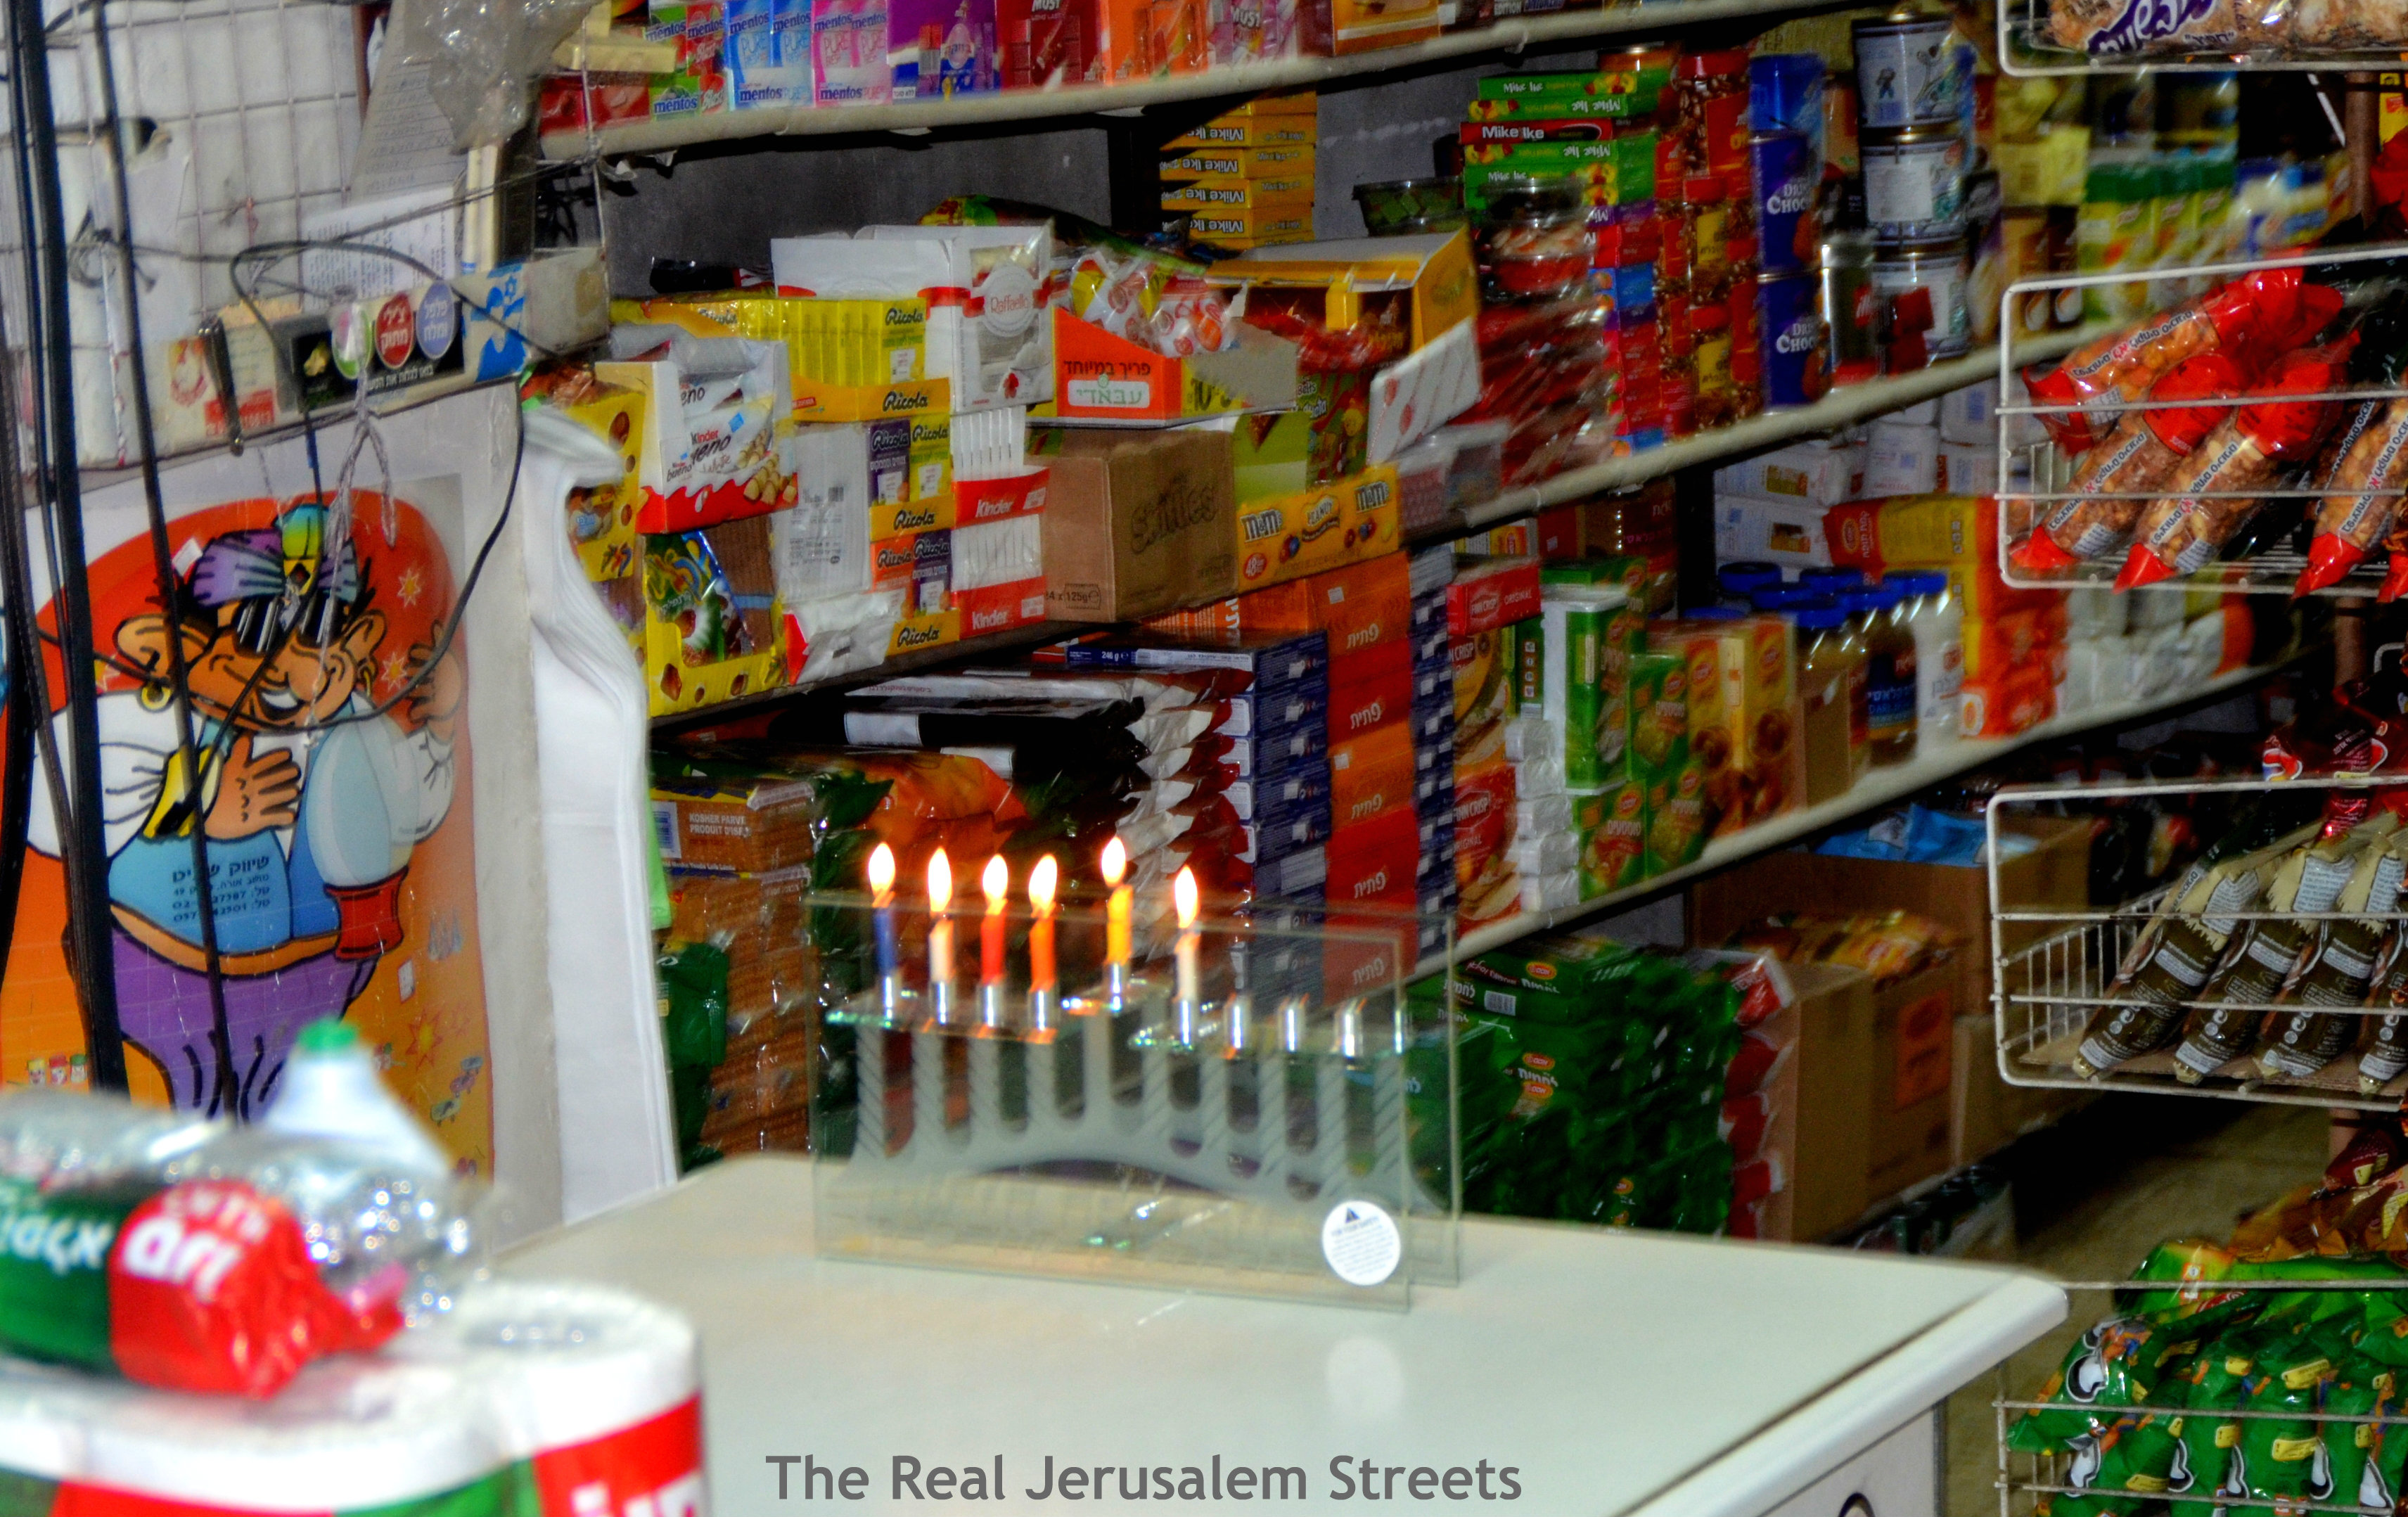 image Chaukah, picture of chaukiah in store, Chanukah in Jerusalem photo